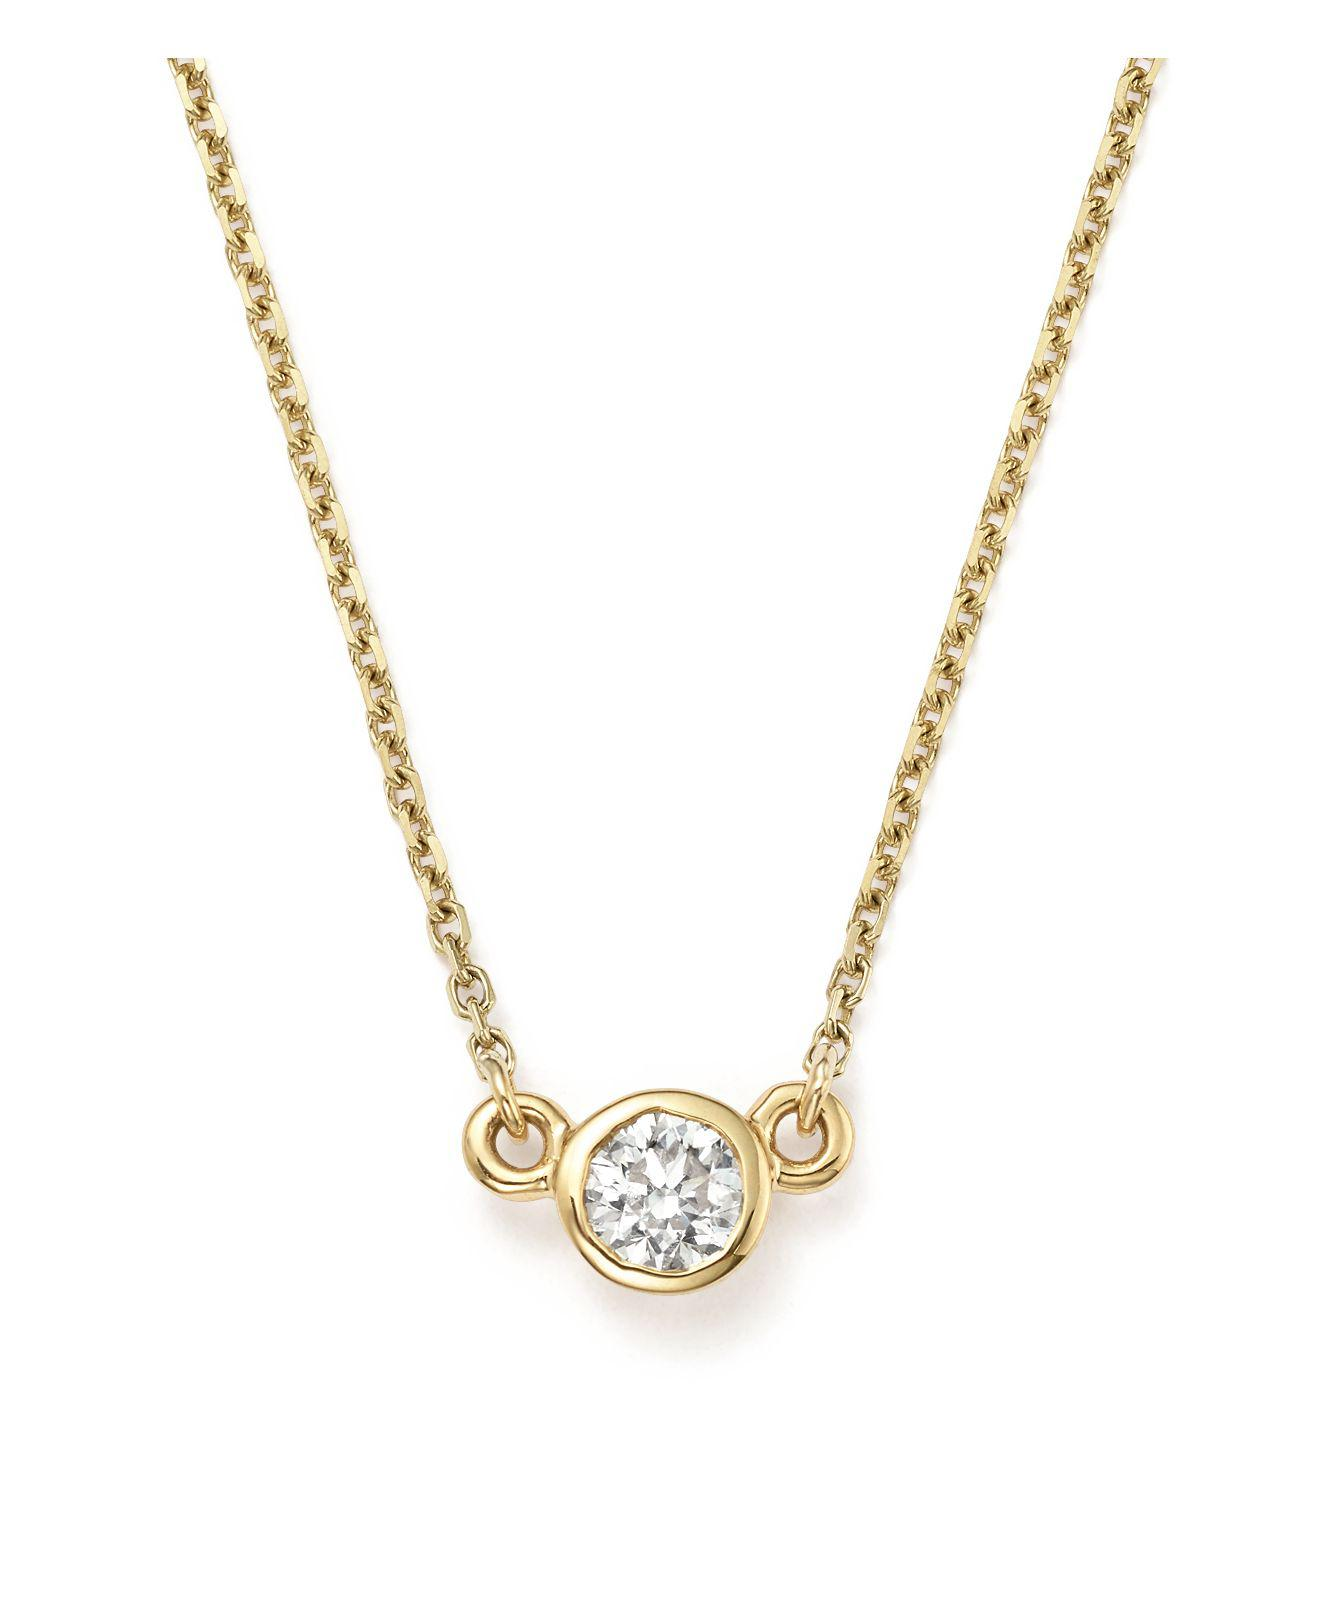 lisa multi o round diamond set gold ctw necklace halo white majesty stone bijoux pendant with bezel in chain accents